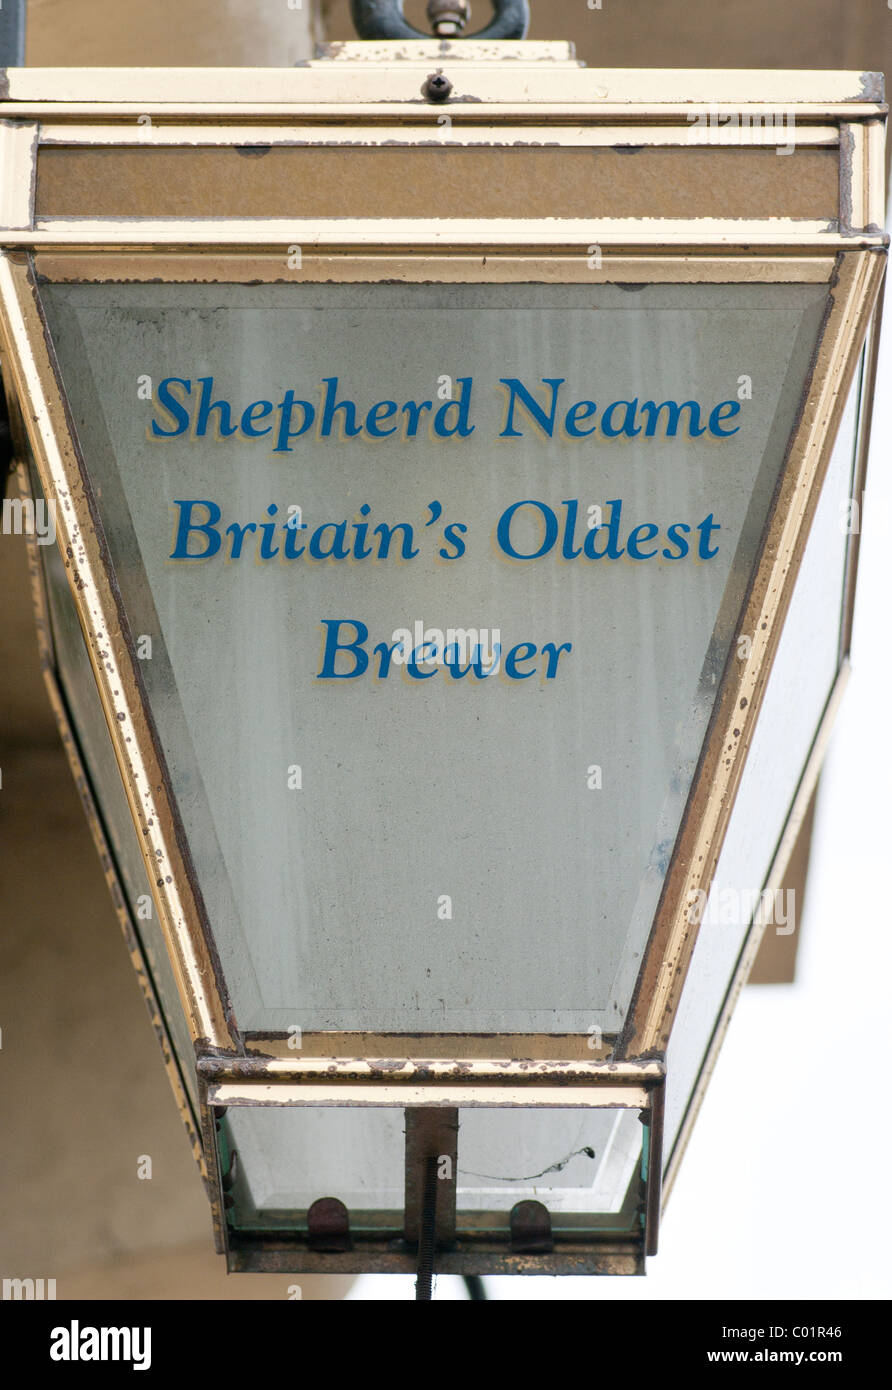 Shepherds Neame Britains Oldest Brewer Lamp - Stock Image